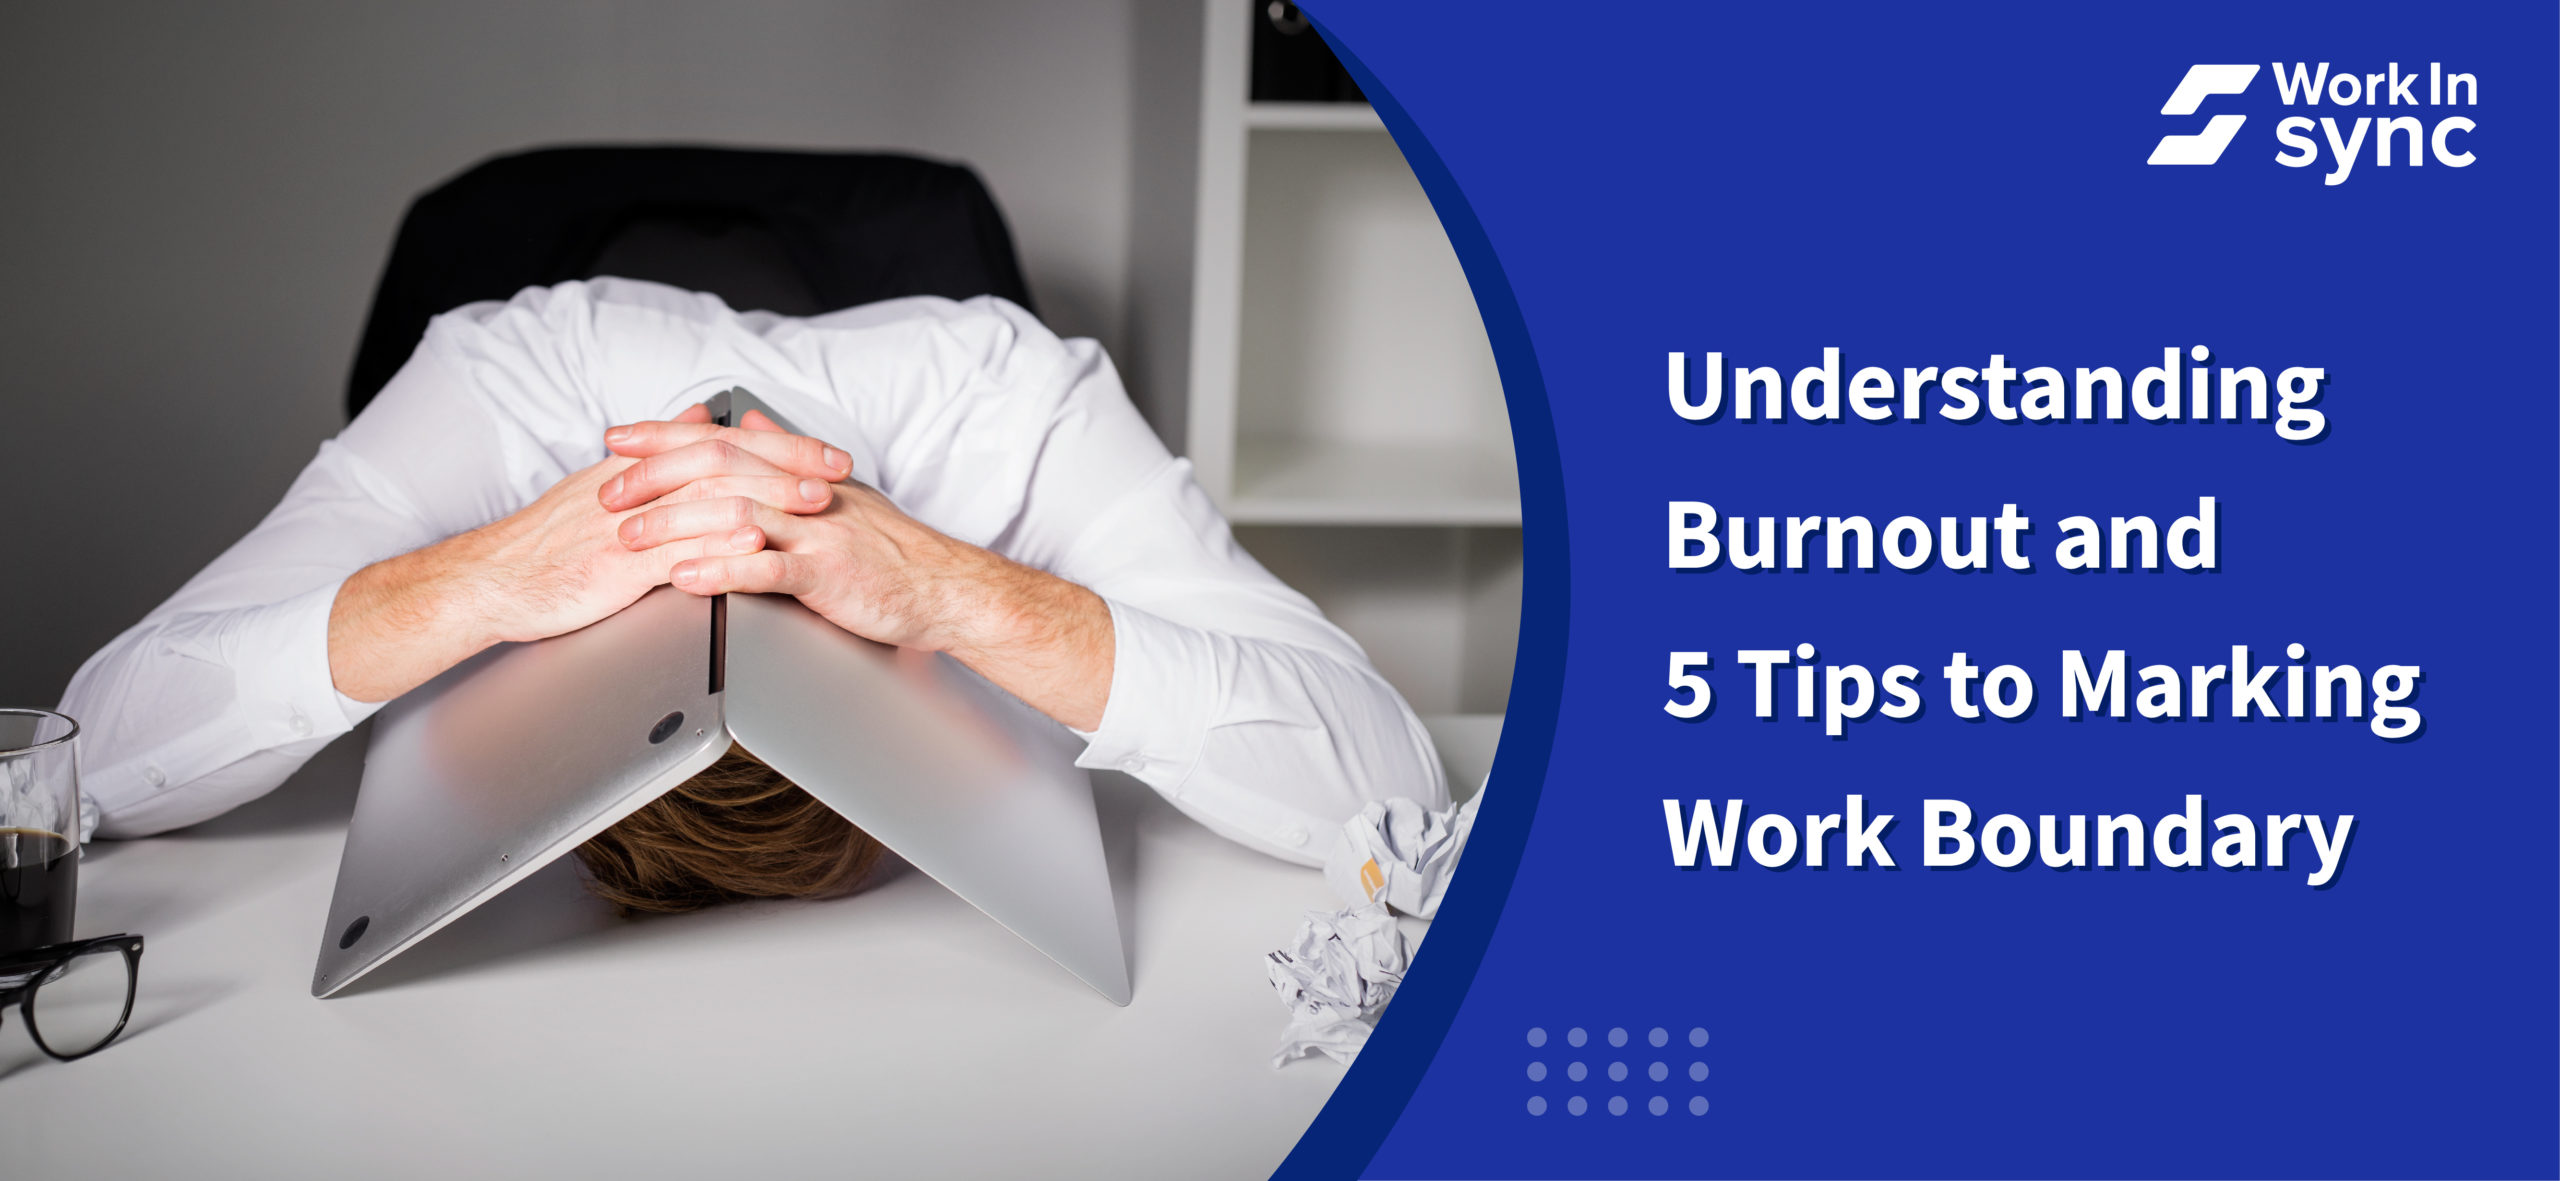 Understanding Burnout & 5 Tips to Marking Work Boundary